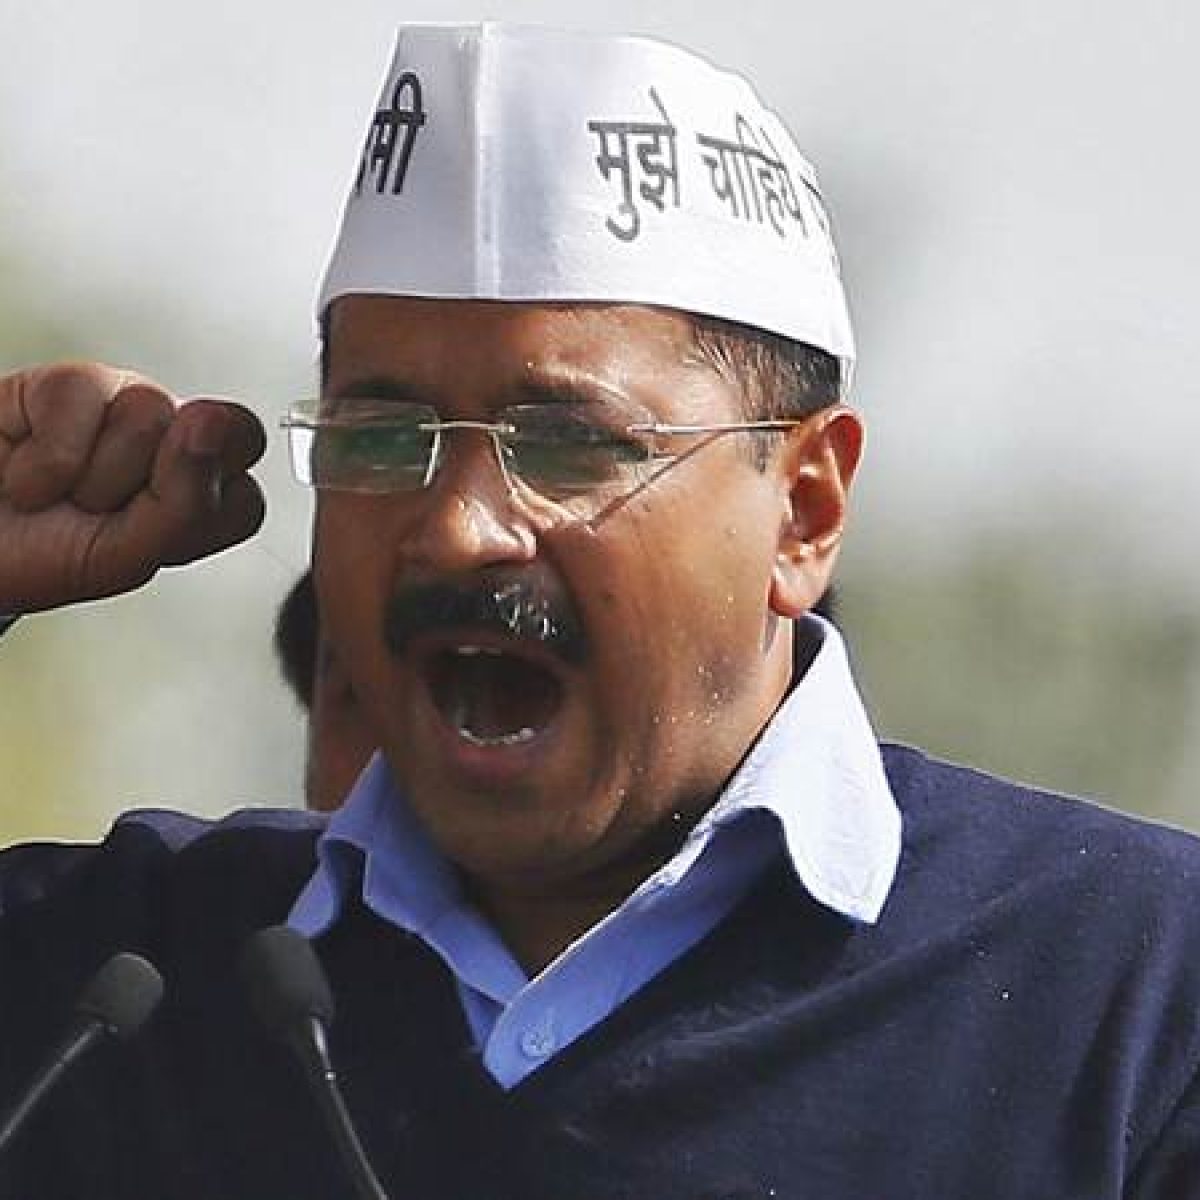 Capital fight: Can AAP win Delhi again?